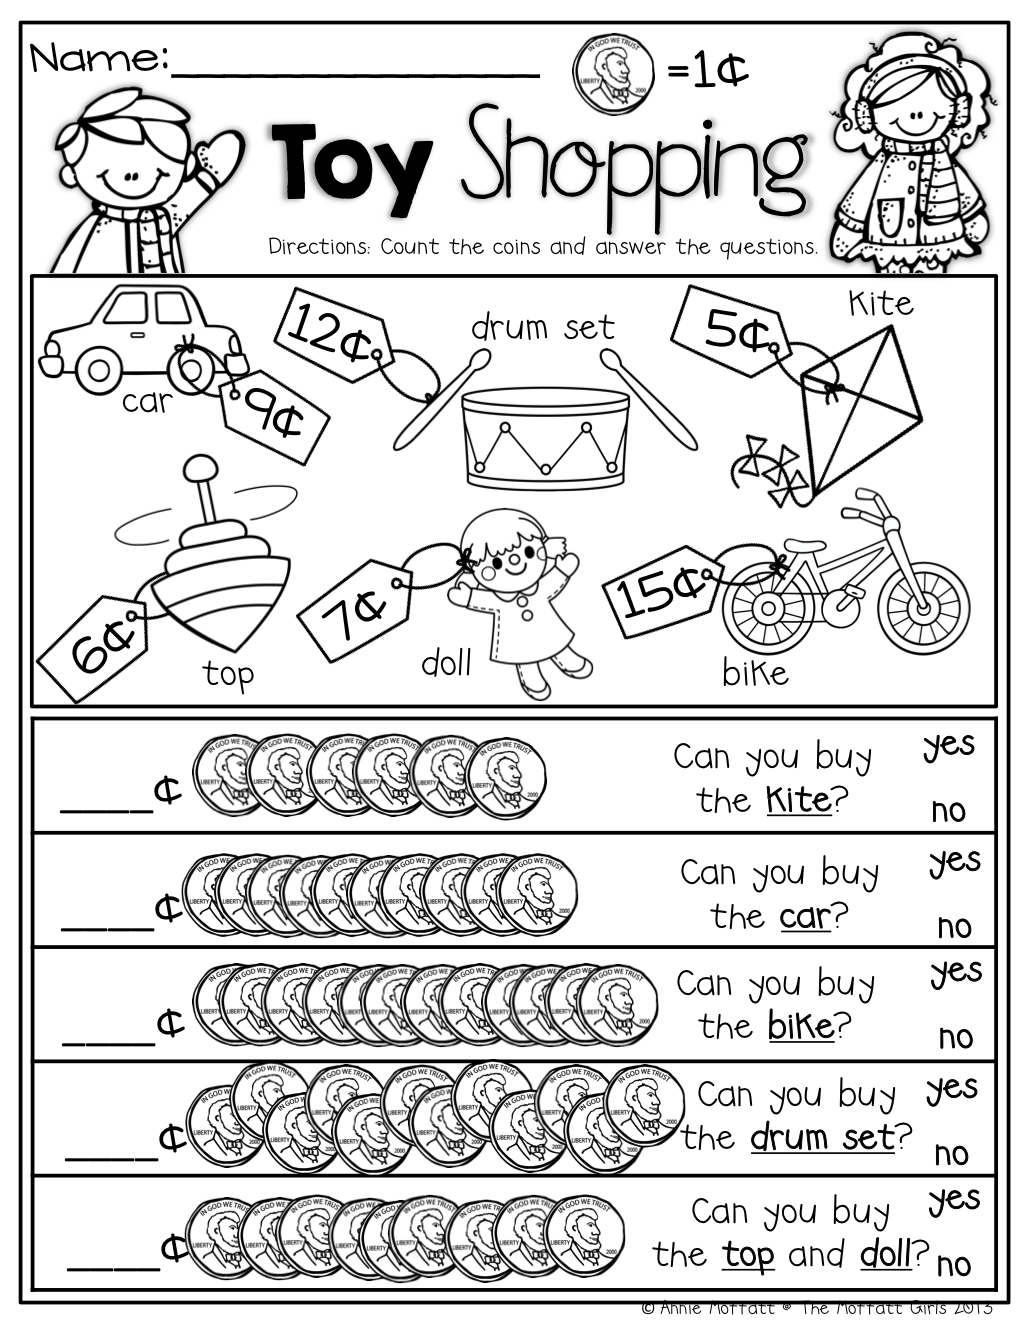 toy shopping counting pennies and comparing numbers kinderland collaborative pinterest. Black Bedroom Furniture Sets. Home Design Ideas